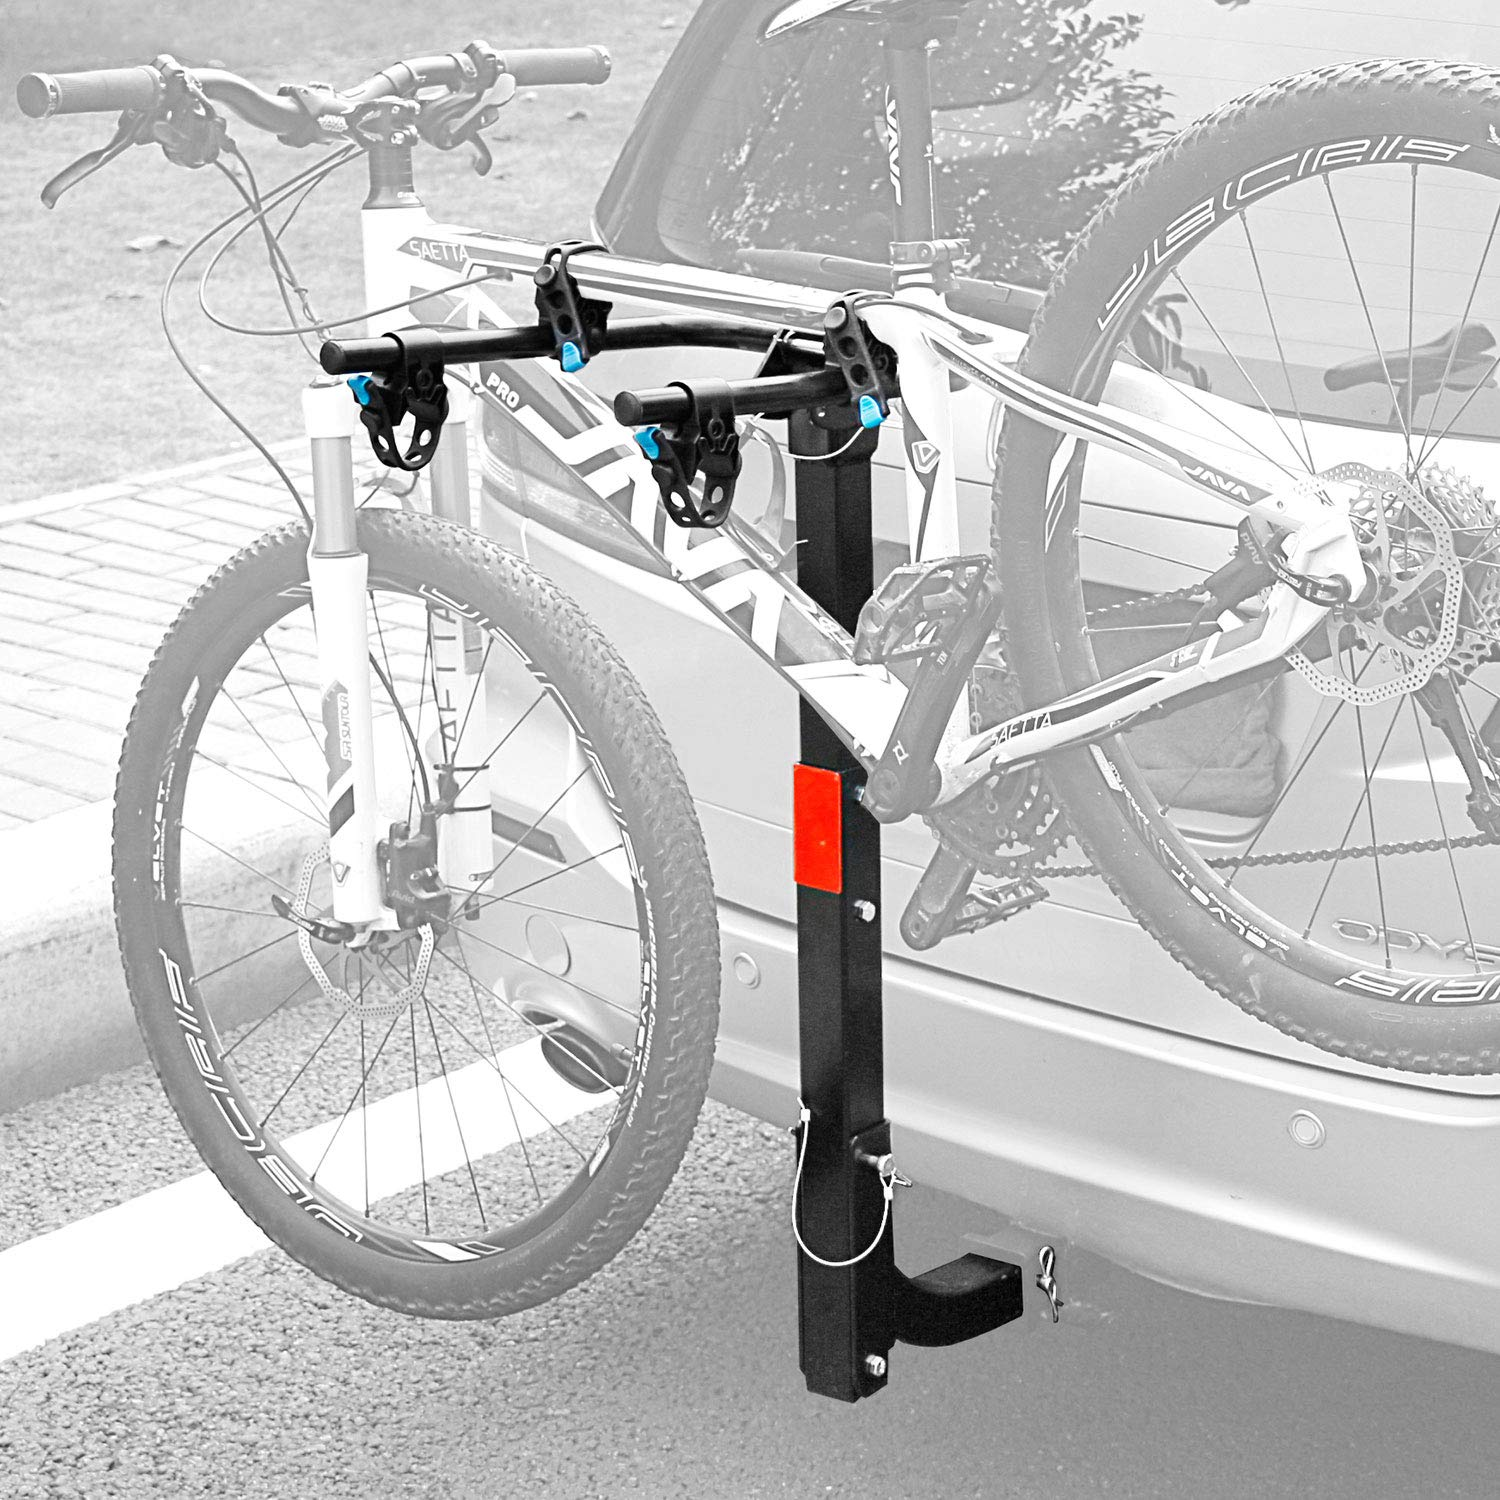 Leader Accessories Hitch Mounted 2 Bike Rack Bicycle Carrier Racks Foldable Rack for Cars, Trucks, SUV's and Minivans with 2'' Hitch Receiver